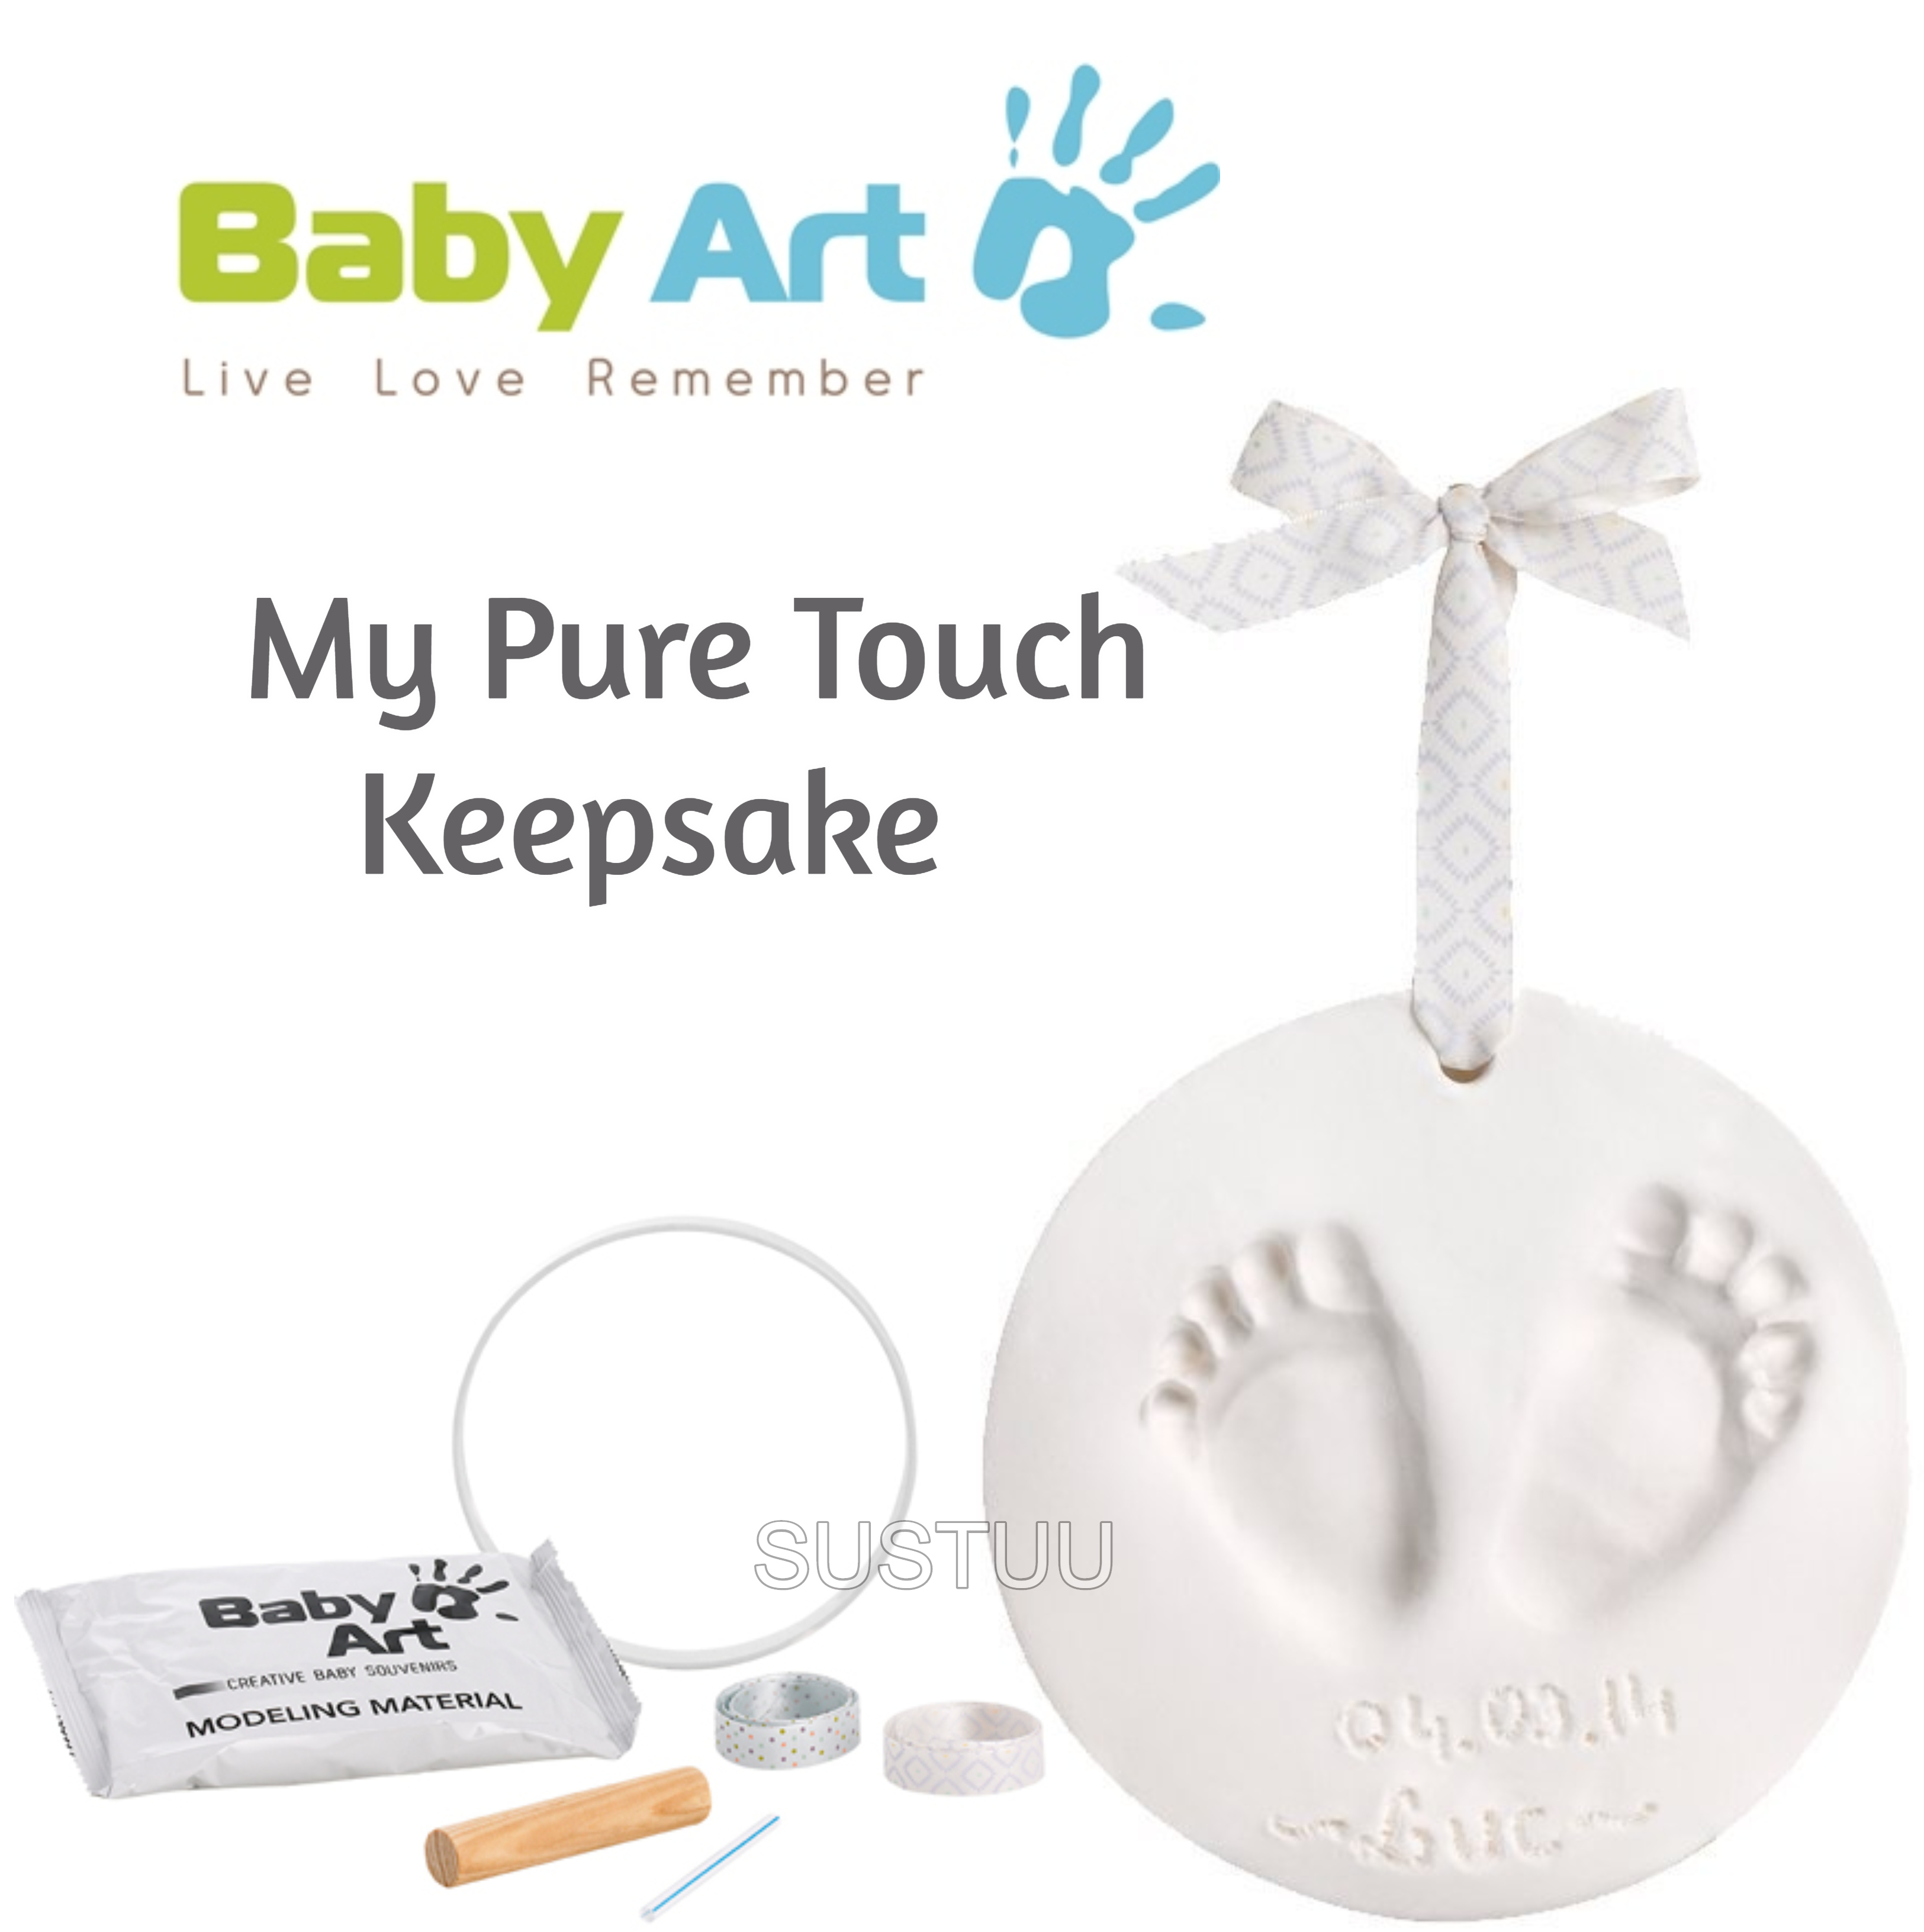 Baby Art My Pure Touch Keepsake|Kid's Round Footprint & Handprint Kit Set|0-3y|